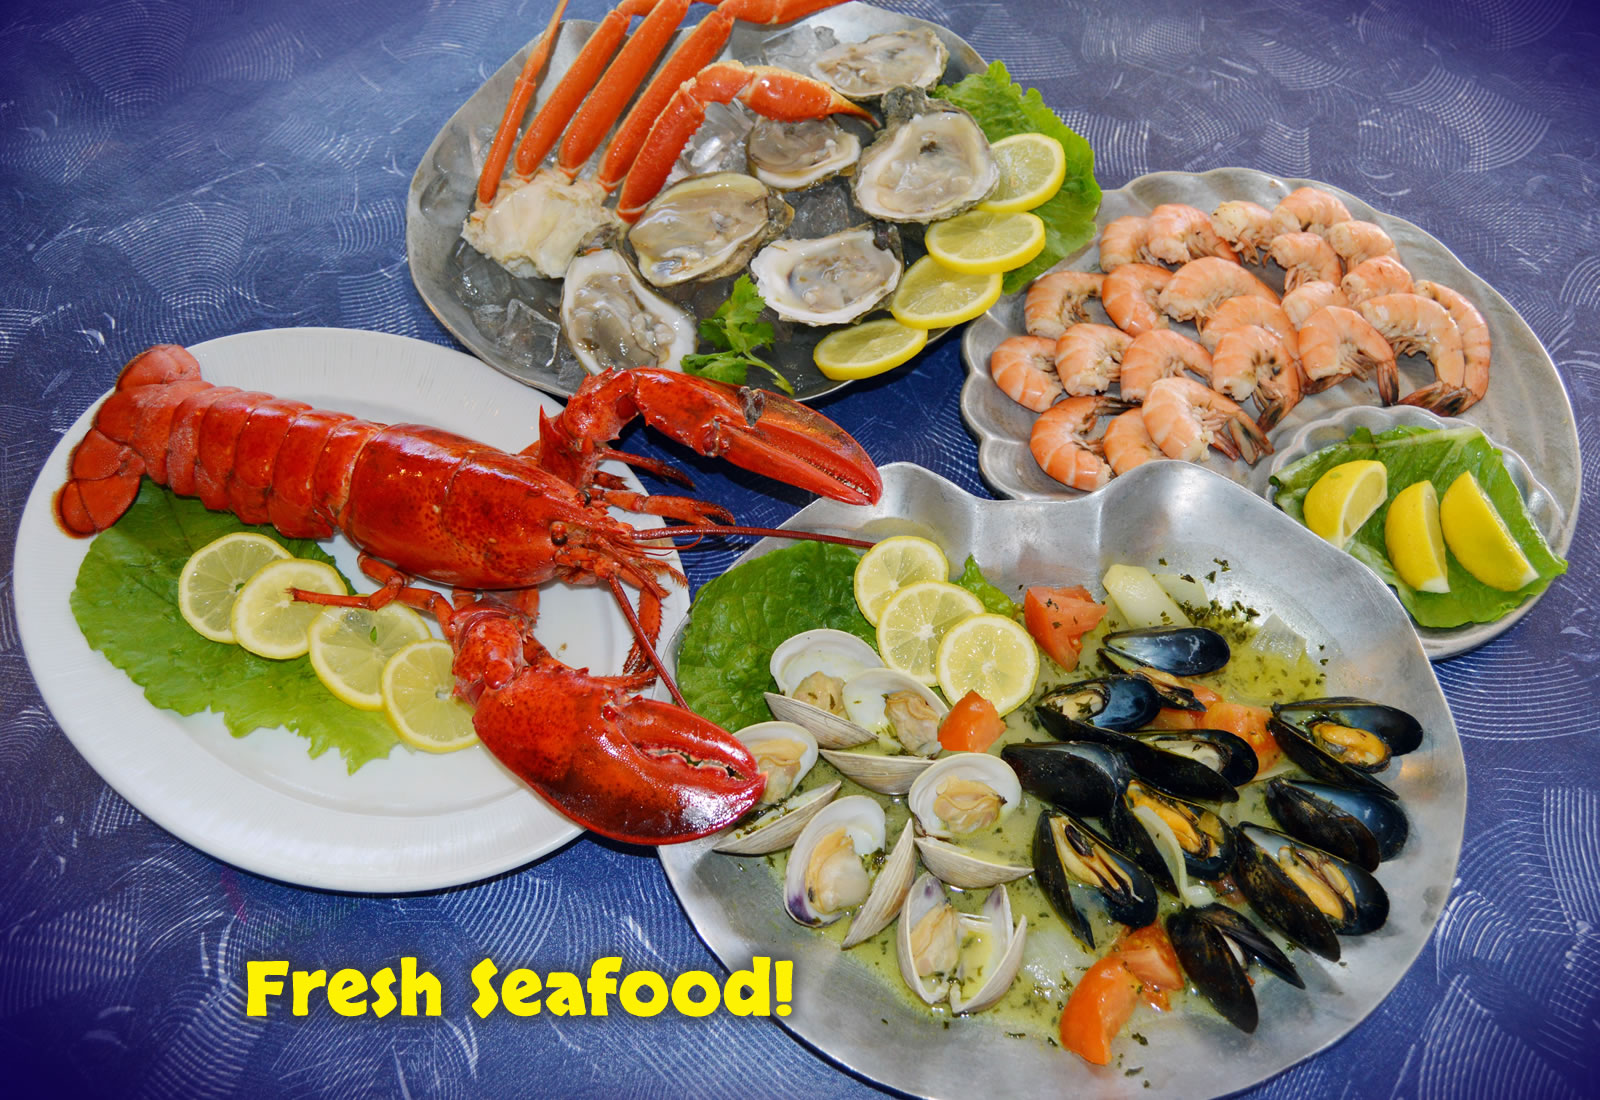 Fresh seafood dining in Melbourne, FL